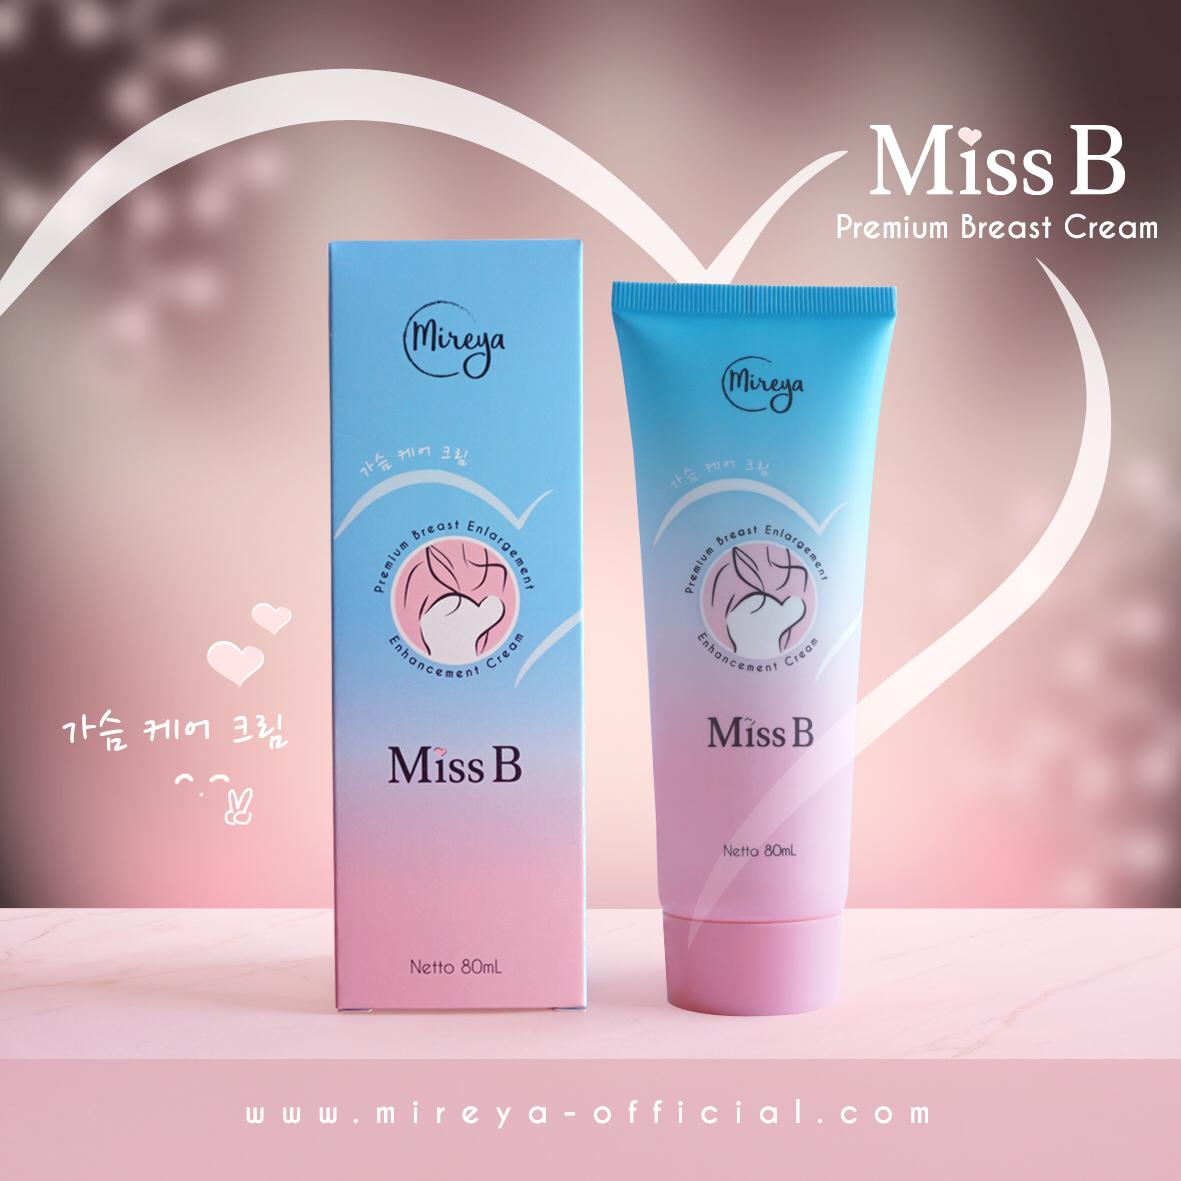 MIREYA MISS B PREMIUM BREAST CREAM image